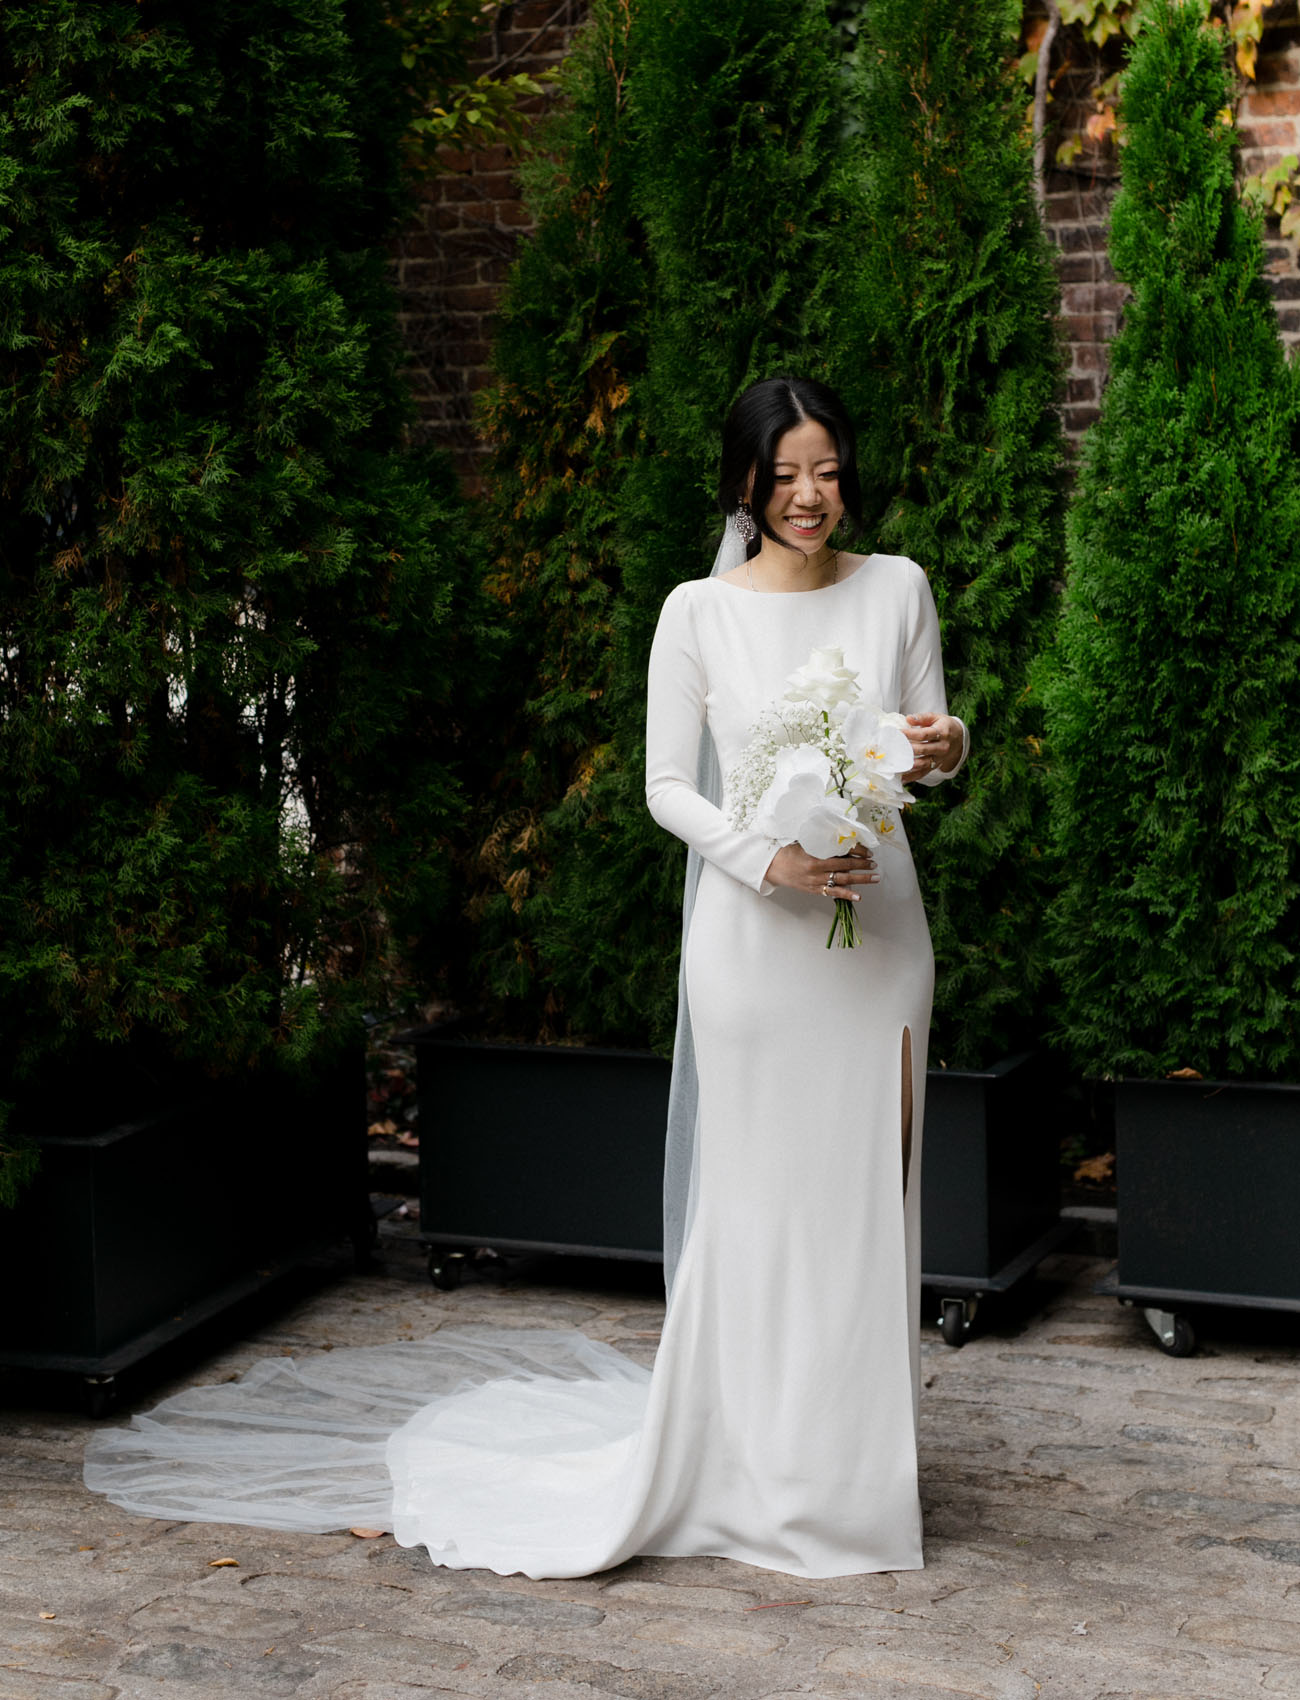 The bride was wearing a plain wedding dress with a high neckline, long sleeves and an open back plus a long veil